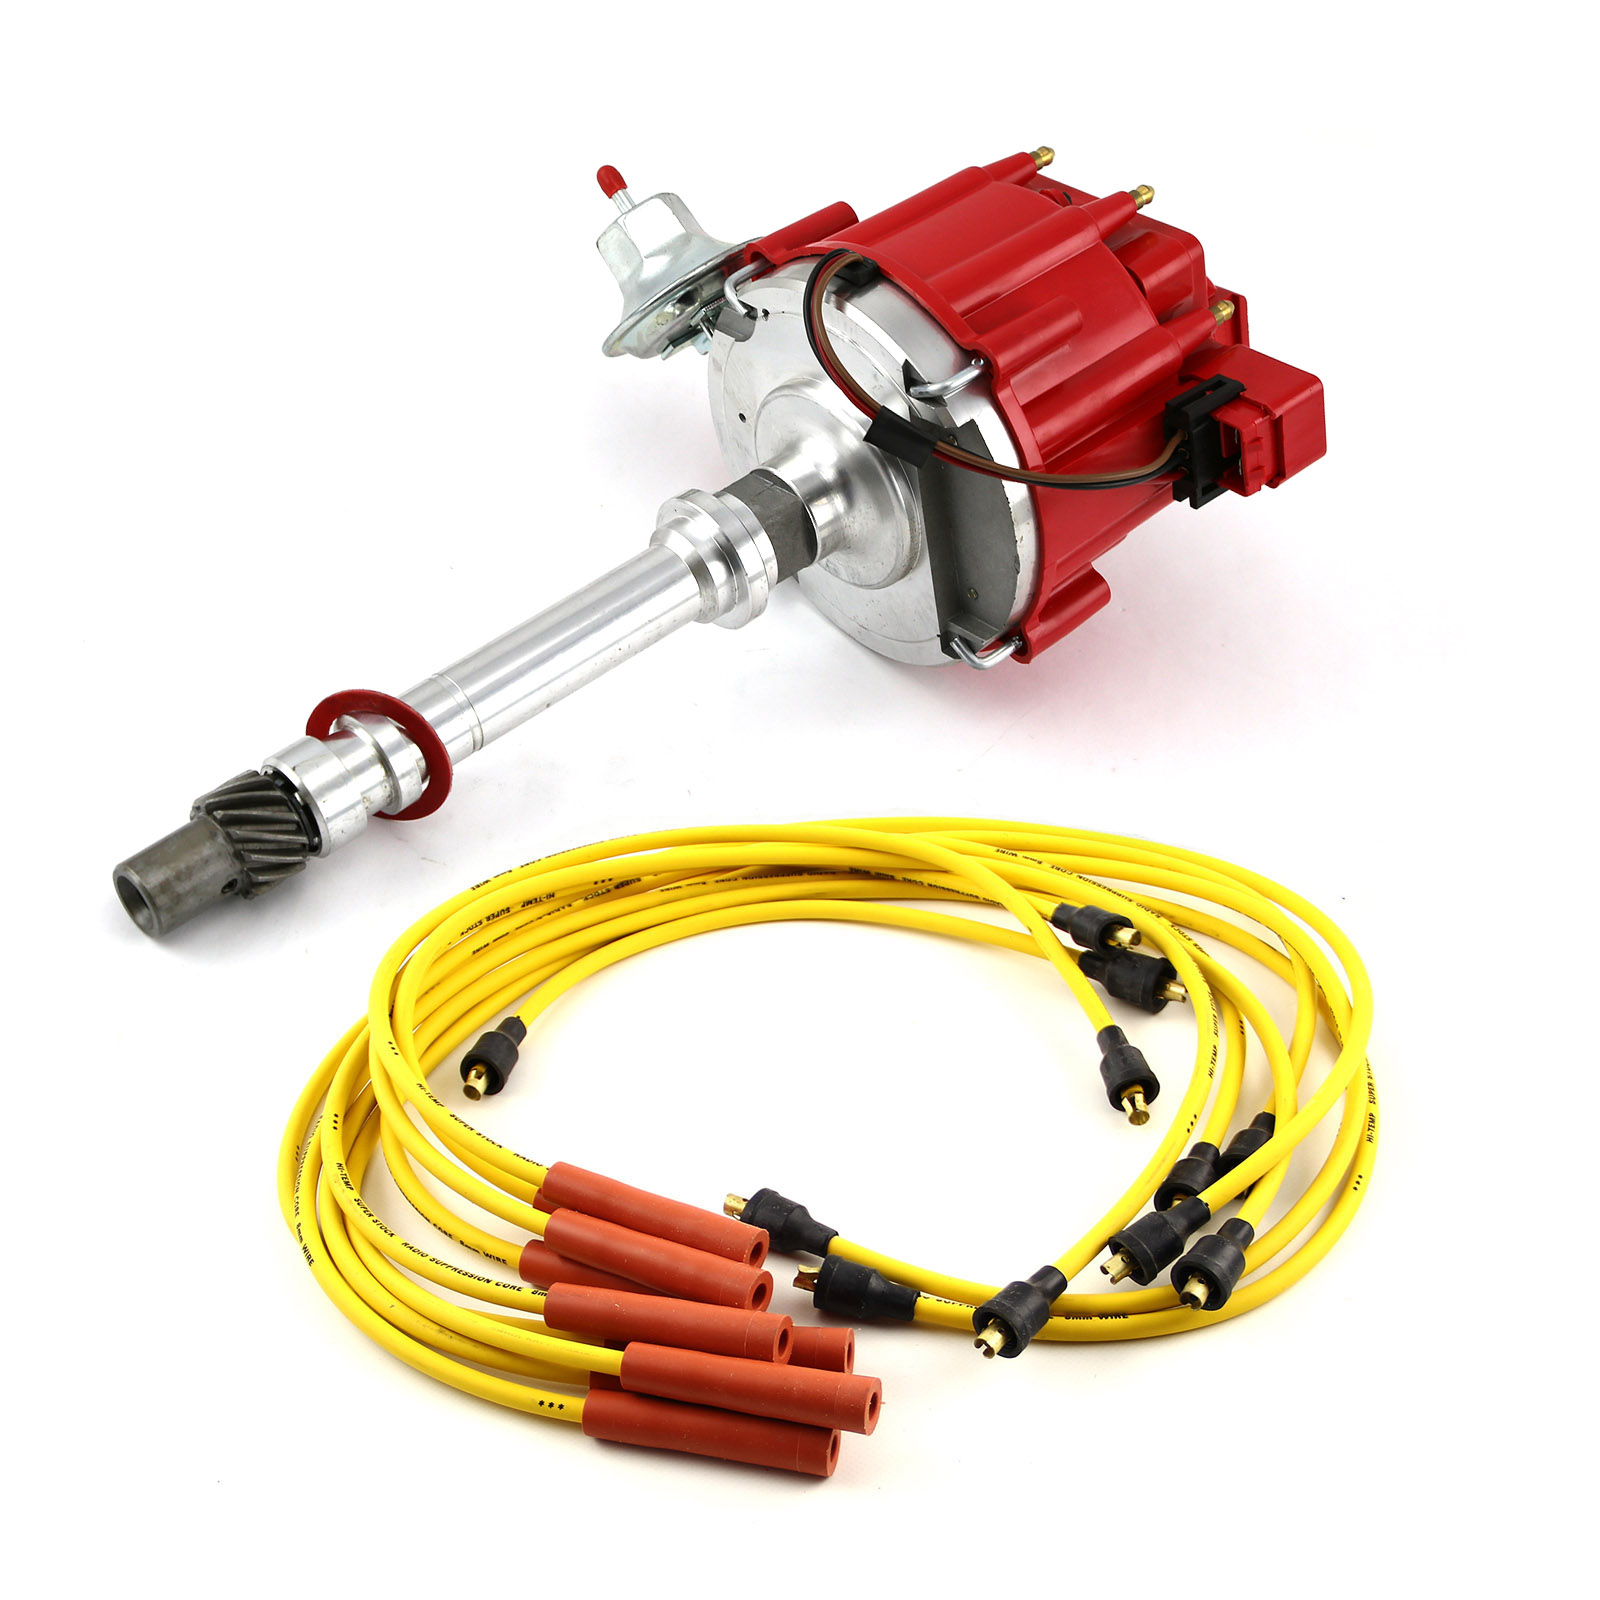 Chevy Hei Ignition Wiring Free Diagram For You Plug Truck Sbc 350 Bbc 454 Distributor Accel Spark Wires Rh Ebay Com